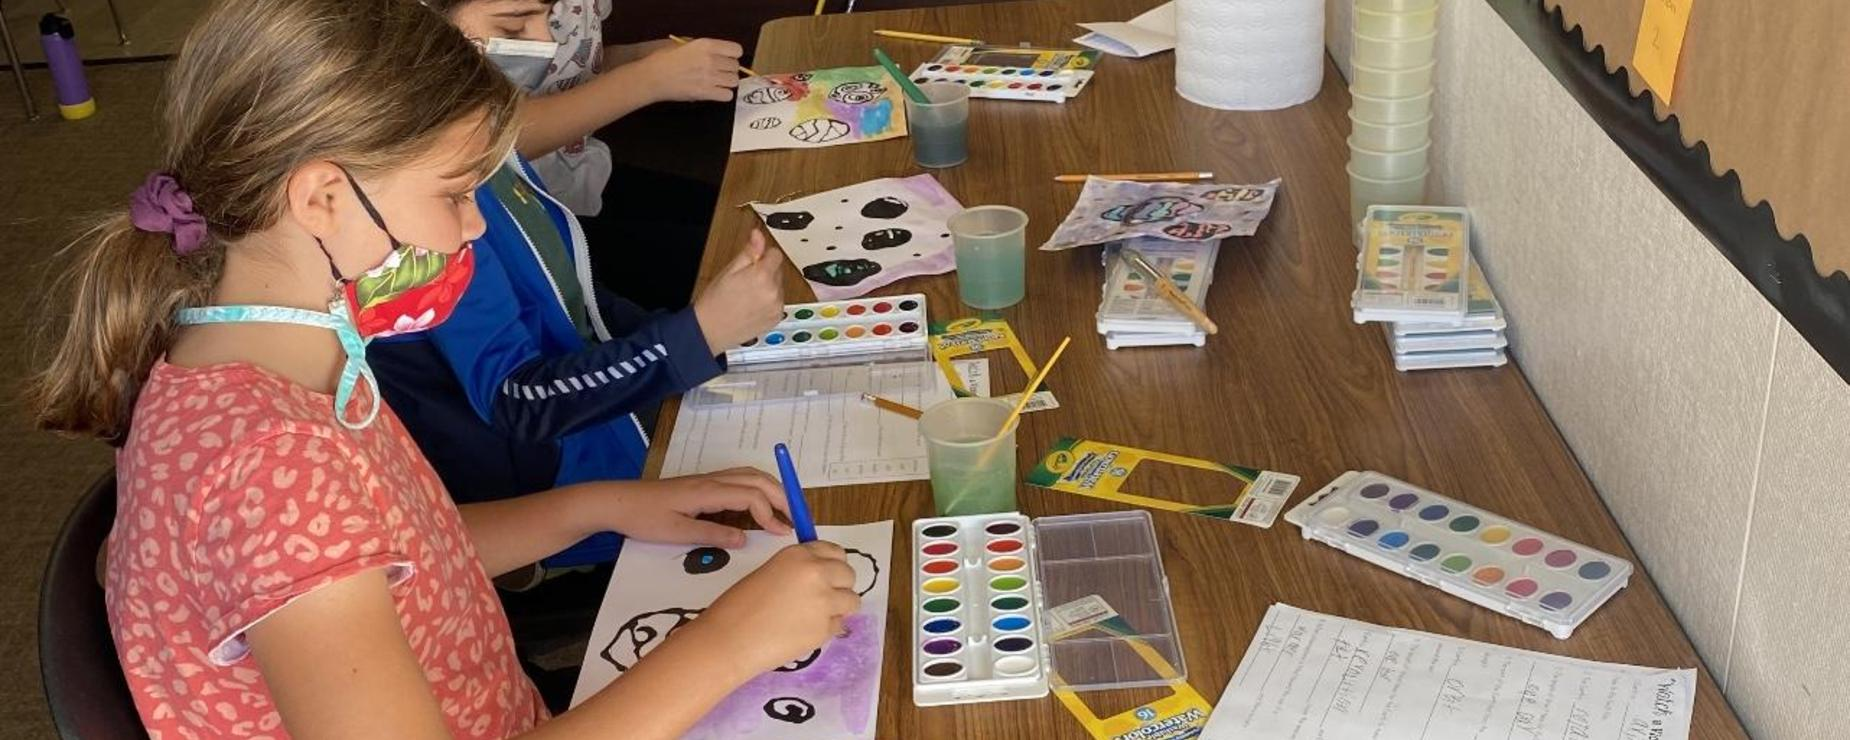 Students painting the planets